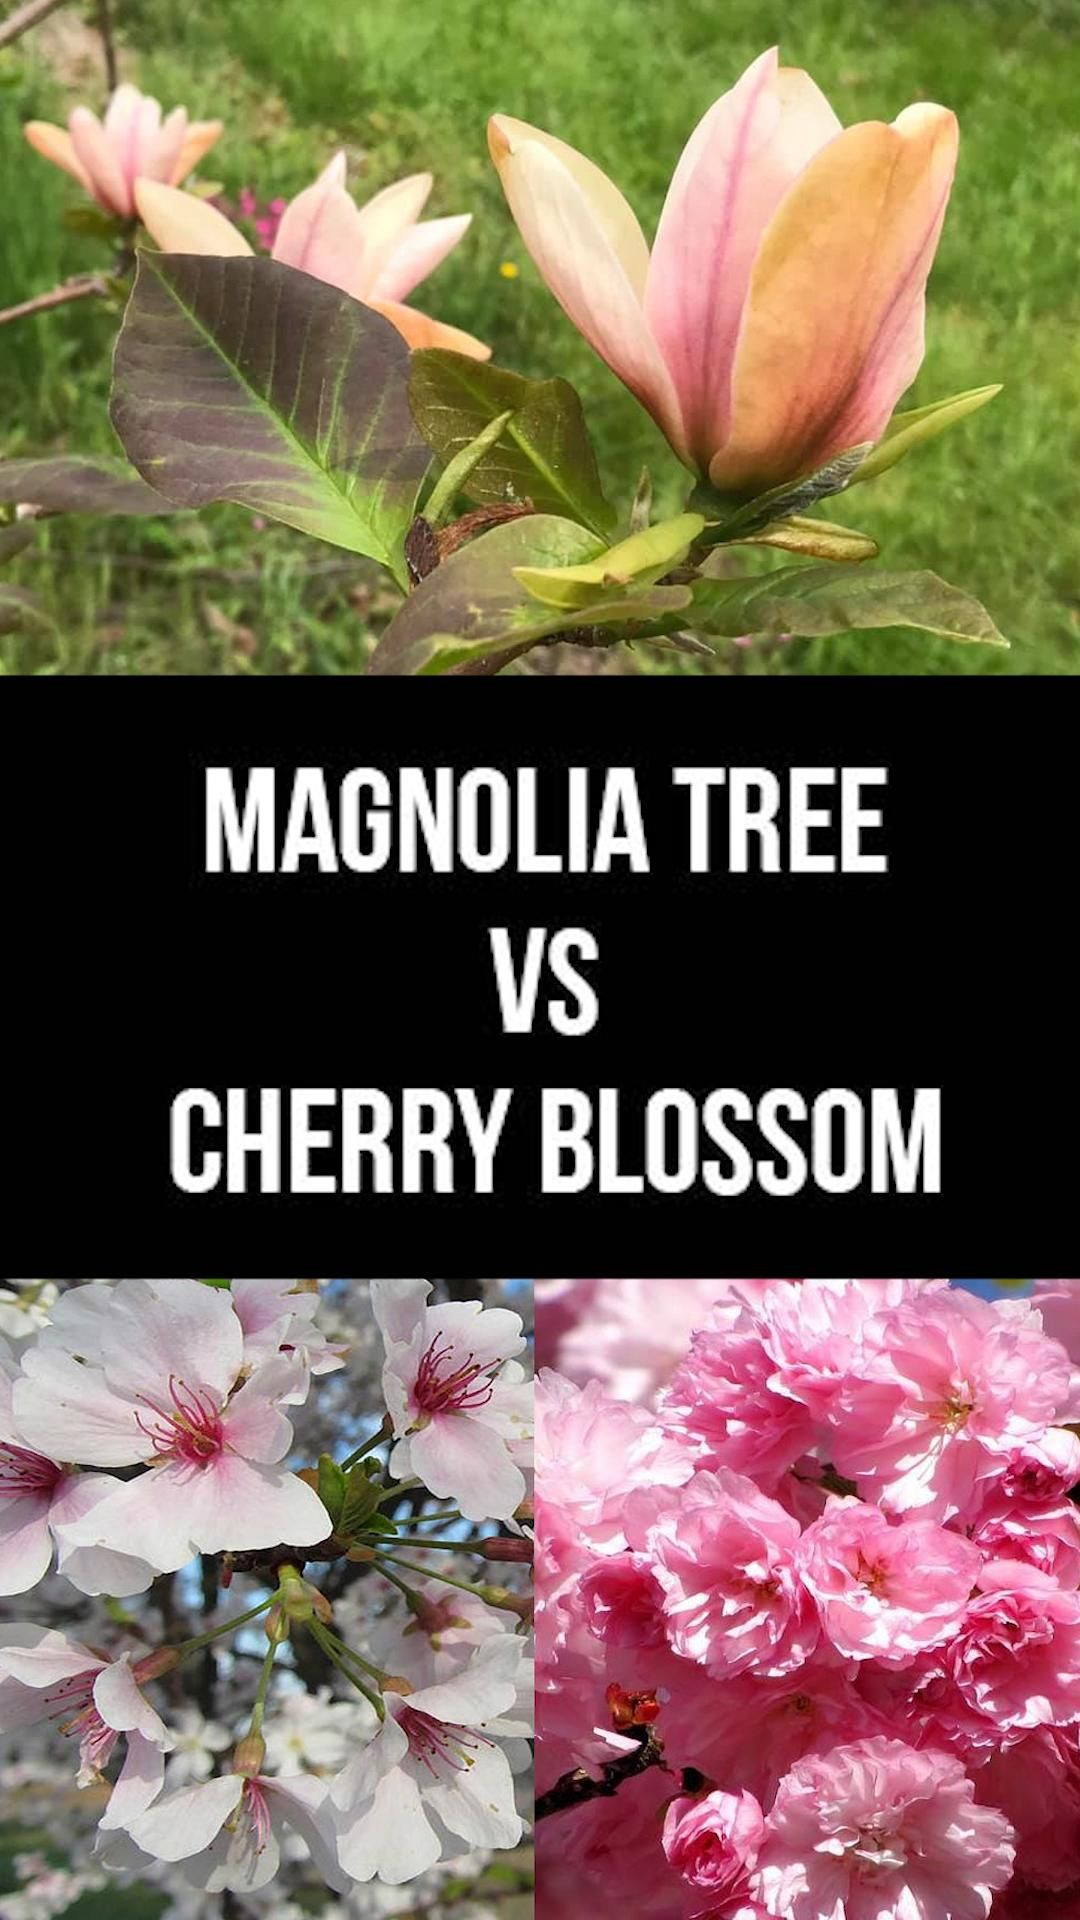 Magnolia Tree Vs Cherry Blossom They Are Very Different Video Plants Garden Types Magnolia Trees